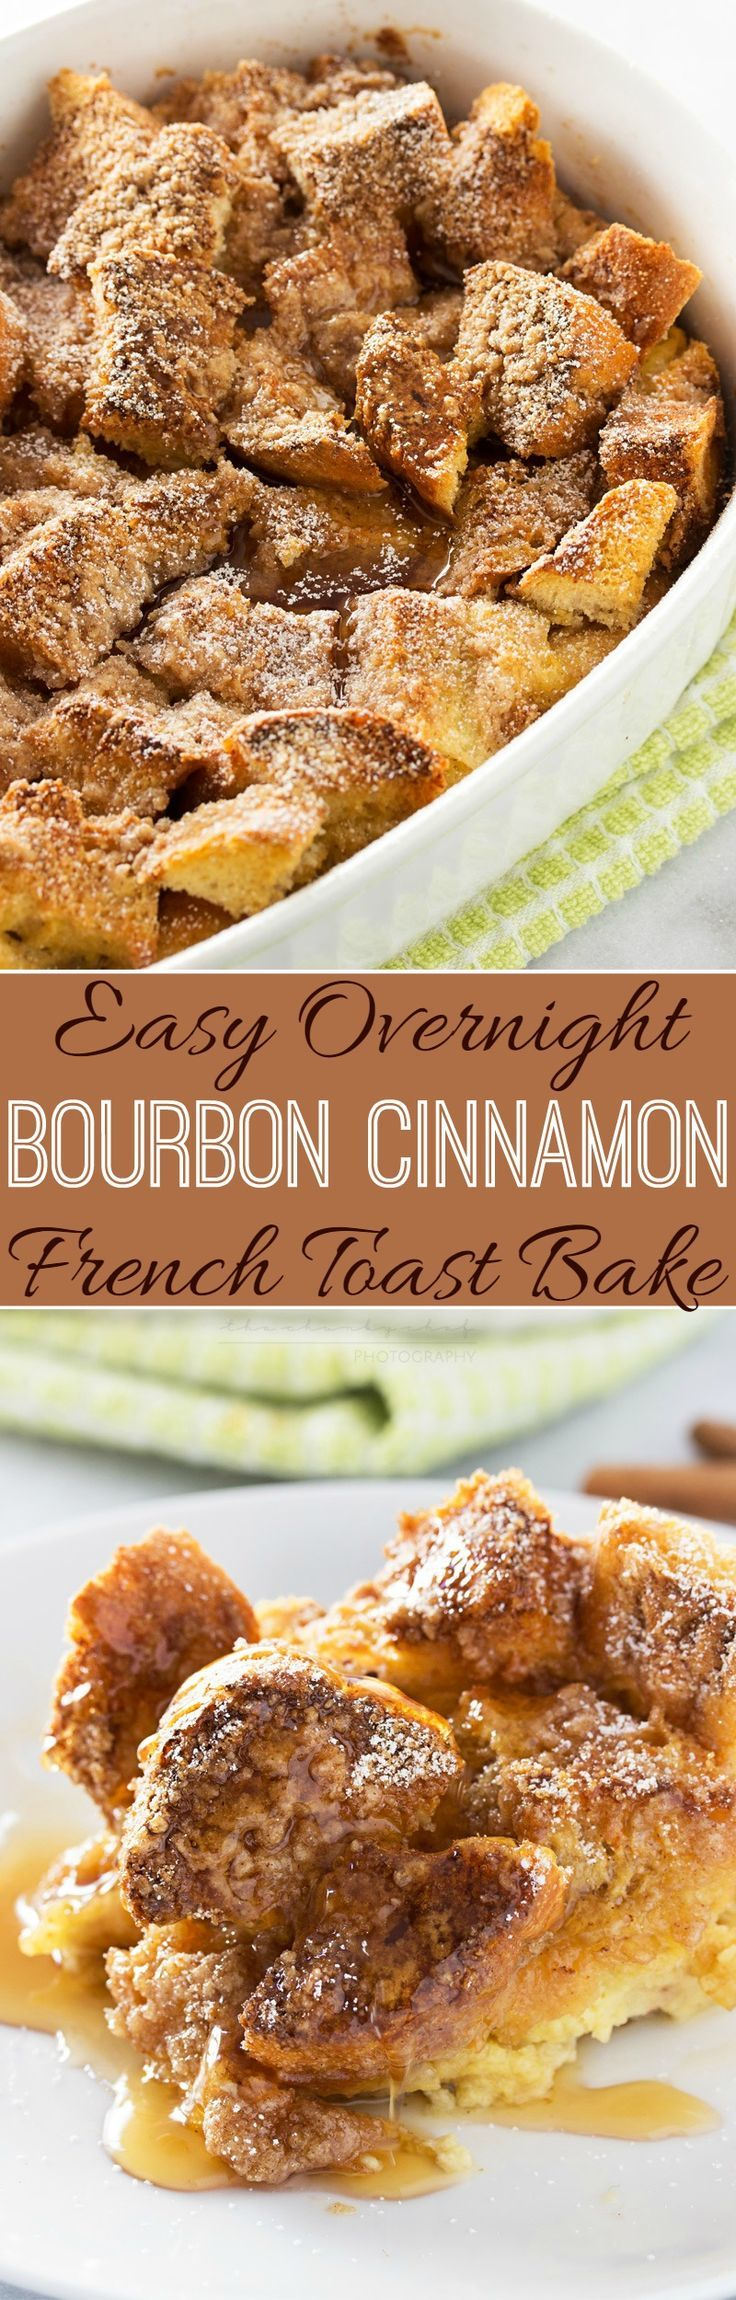 Bourbon Cinnamon French Toast Bake   This french toast bake stands out from the rest with warm cinnamon and sweet bourbon! An easy make ahead breakfast!!